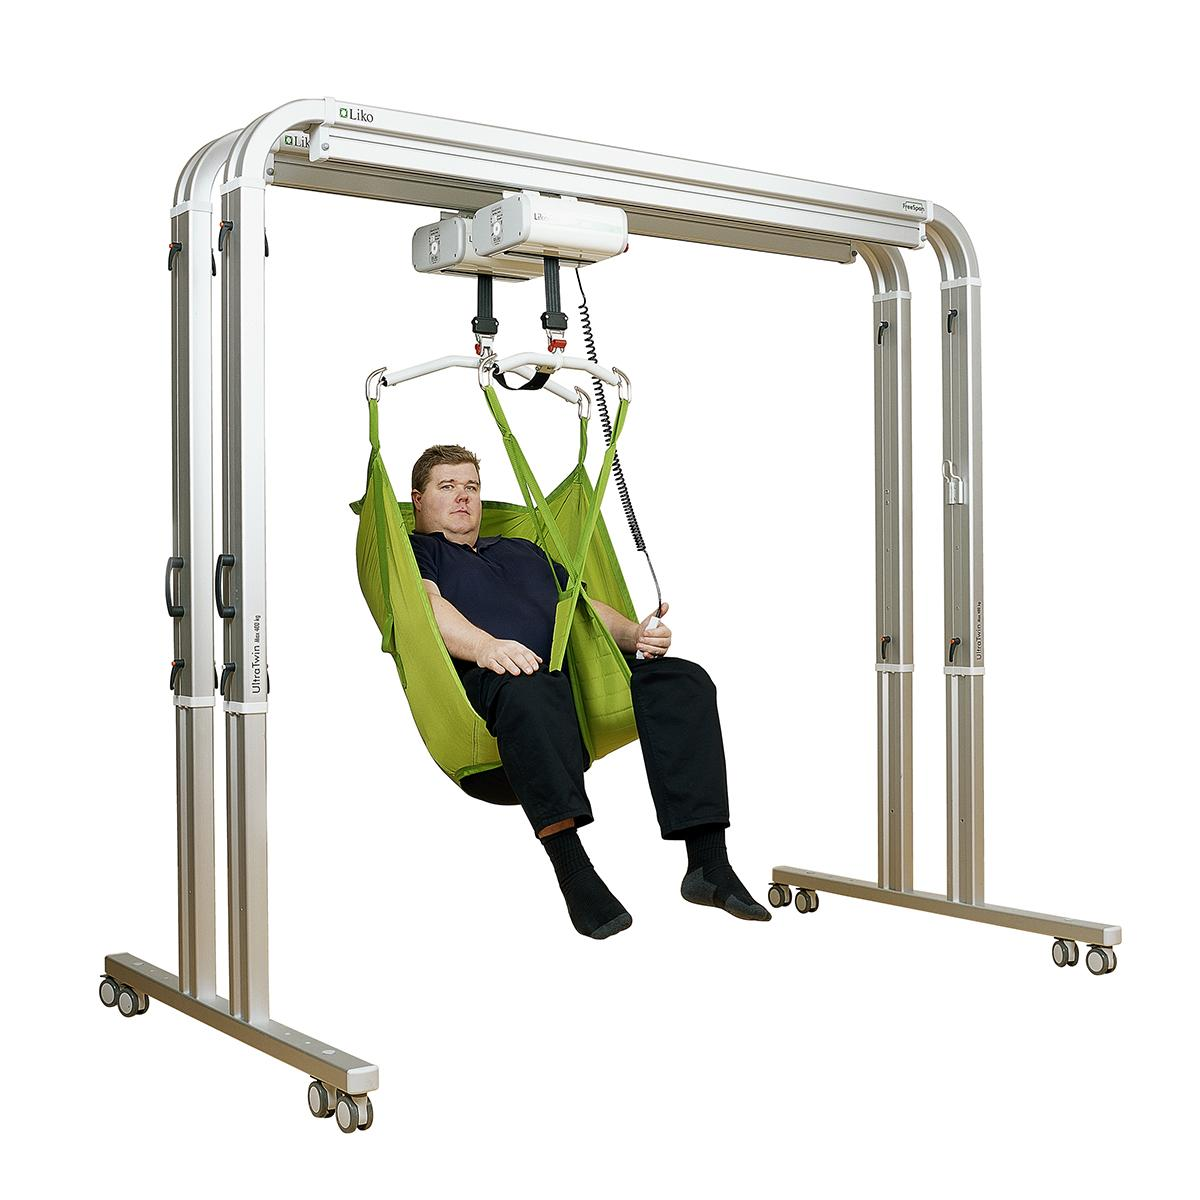 A man sits in a green sling in a FreeSpan UltraTwin lift system from Hillrom